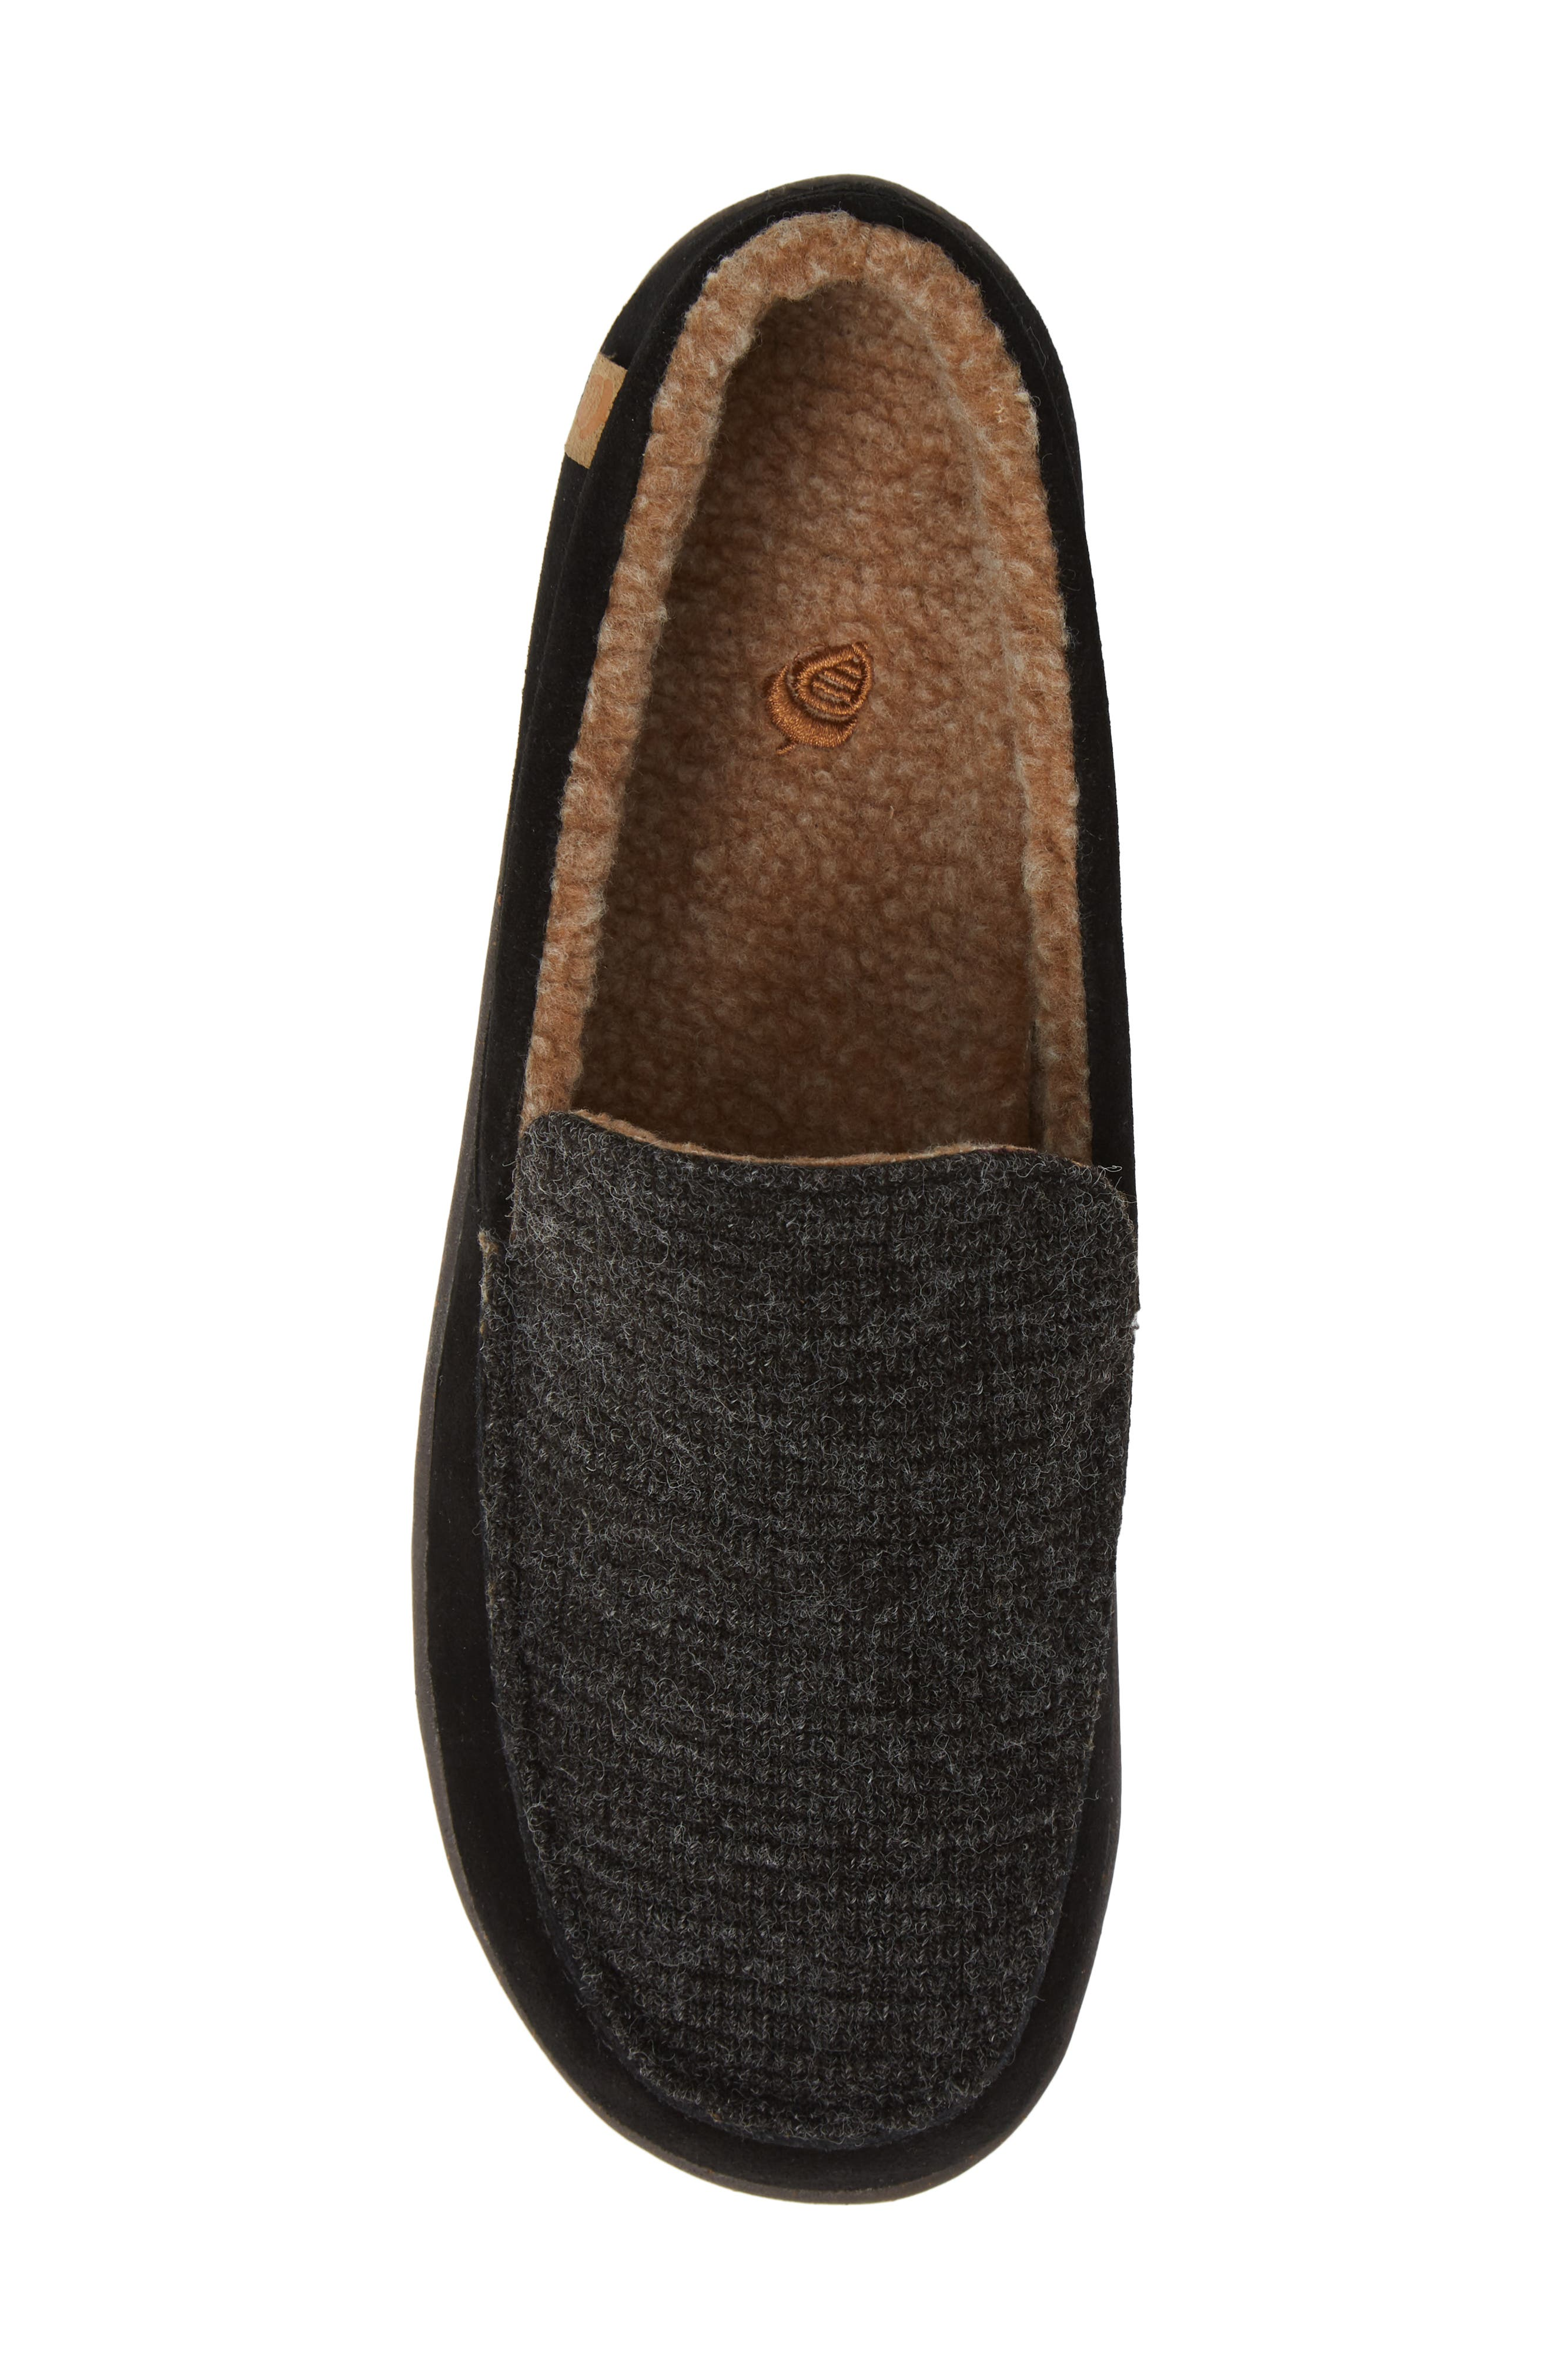 Ellsworth Moc Toe Slipper,                             Alternate thumbnail 5, color,                             BLACK